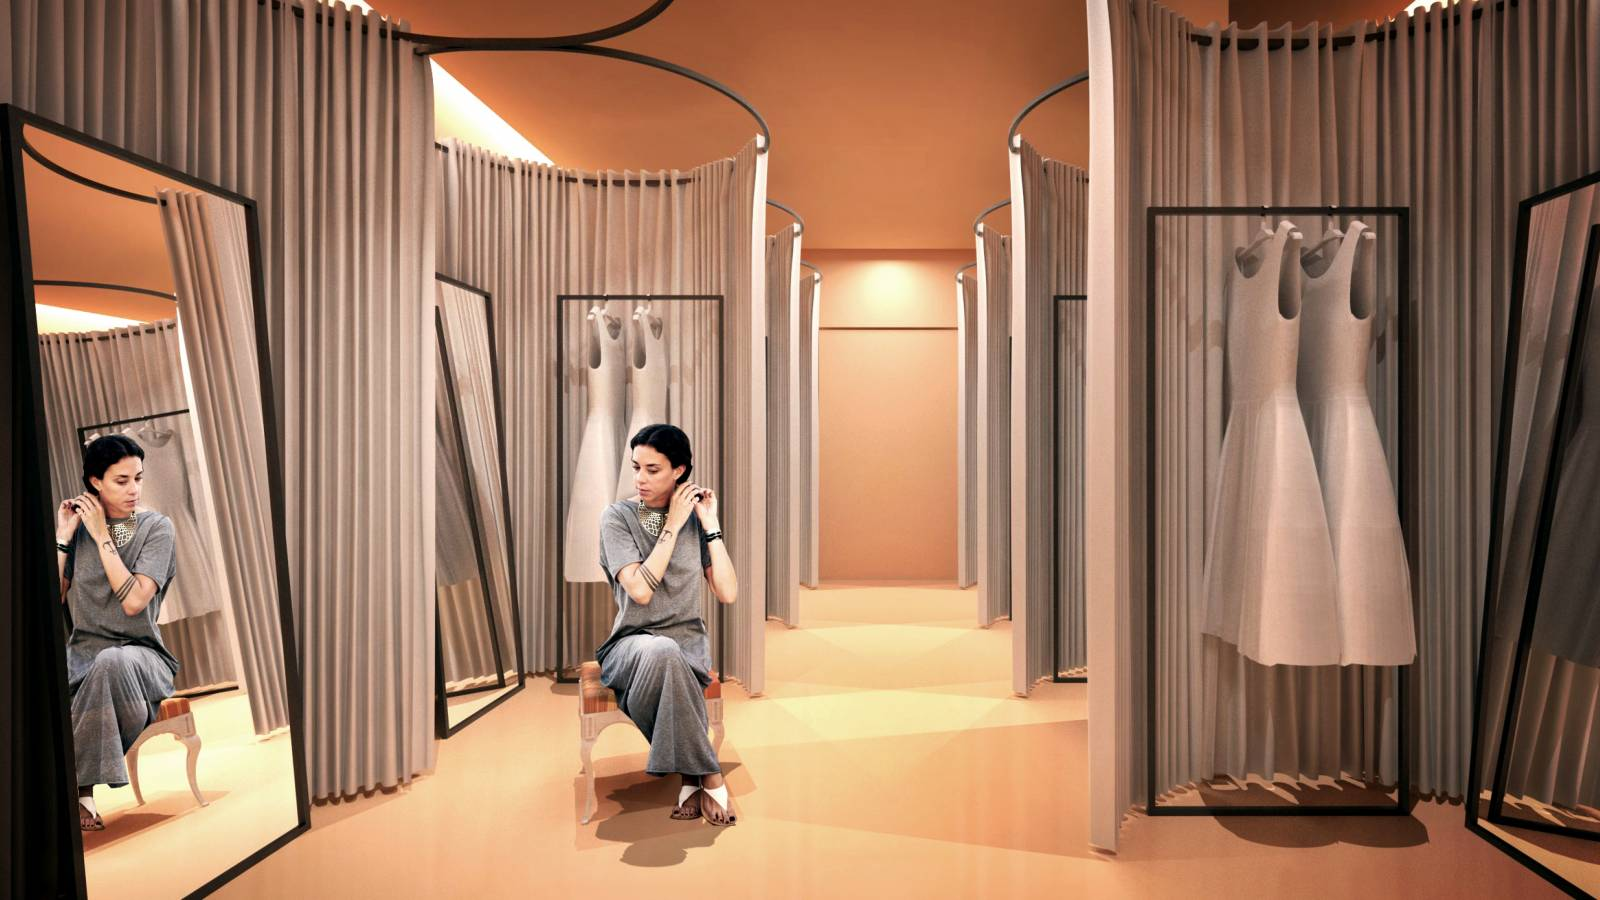 FITTING ROOMS - NK Store - SPOL Architects